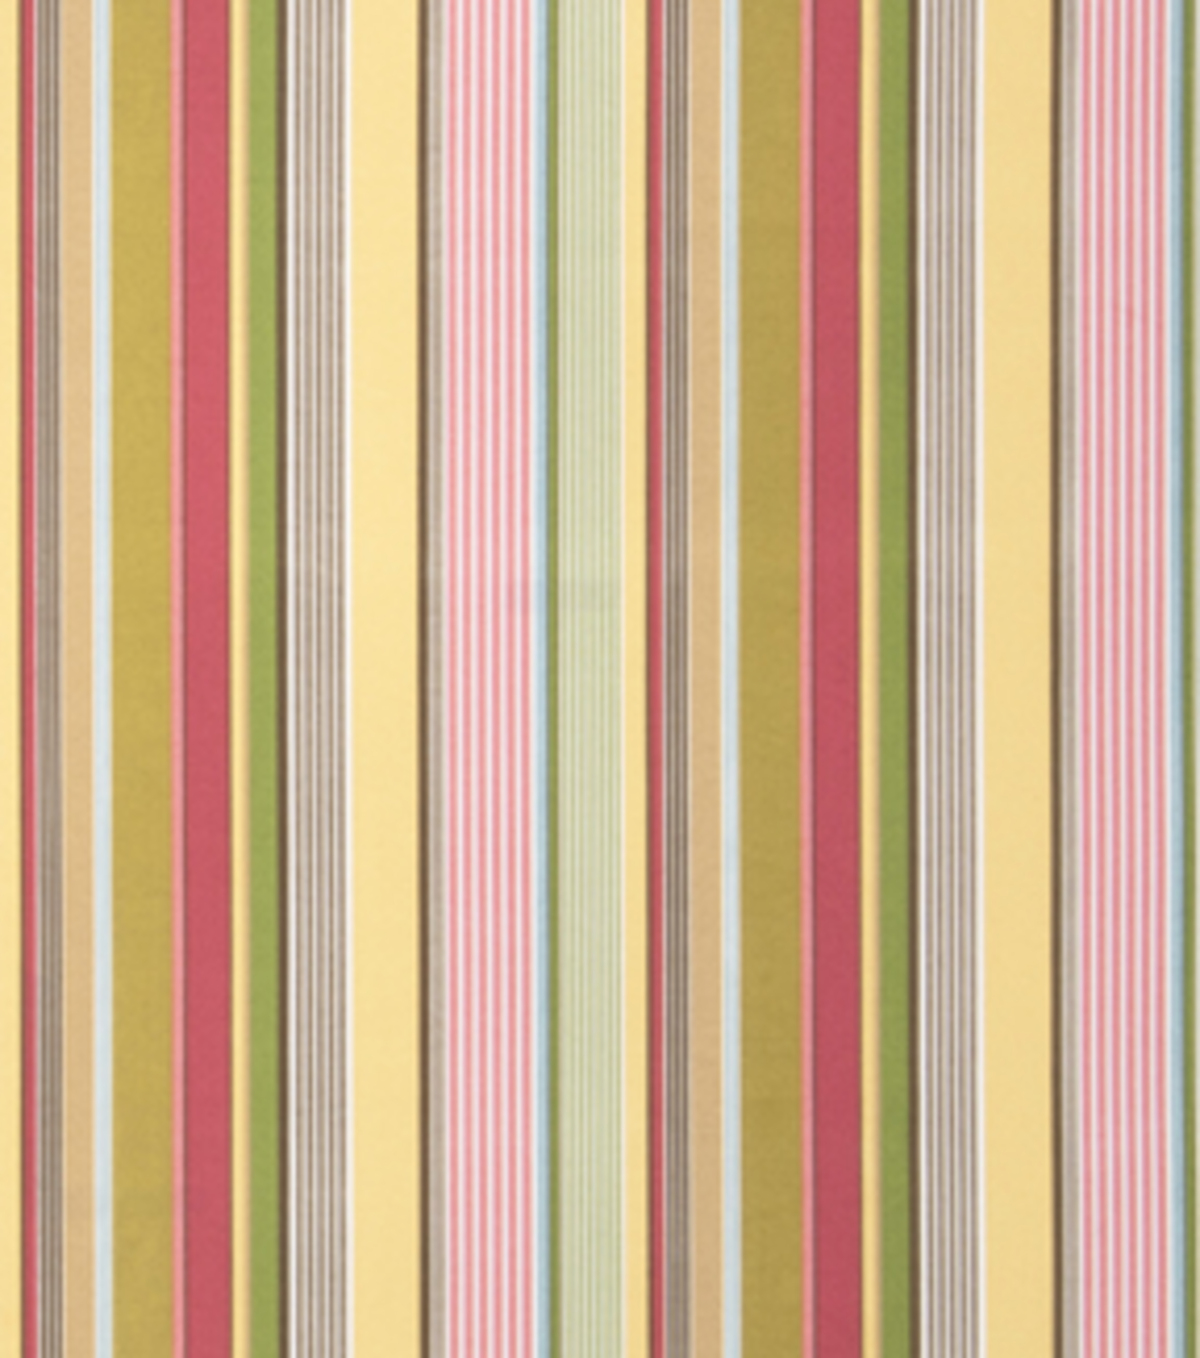 Home Decor 8\u0022x8\u0022 Fabric Swatch-Eaton Square Pintail Bubble Gum